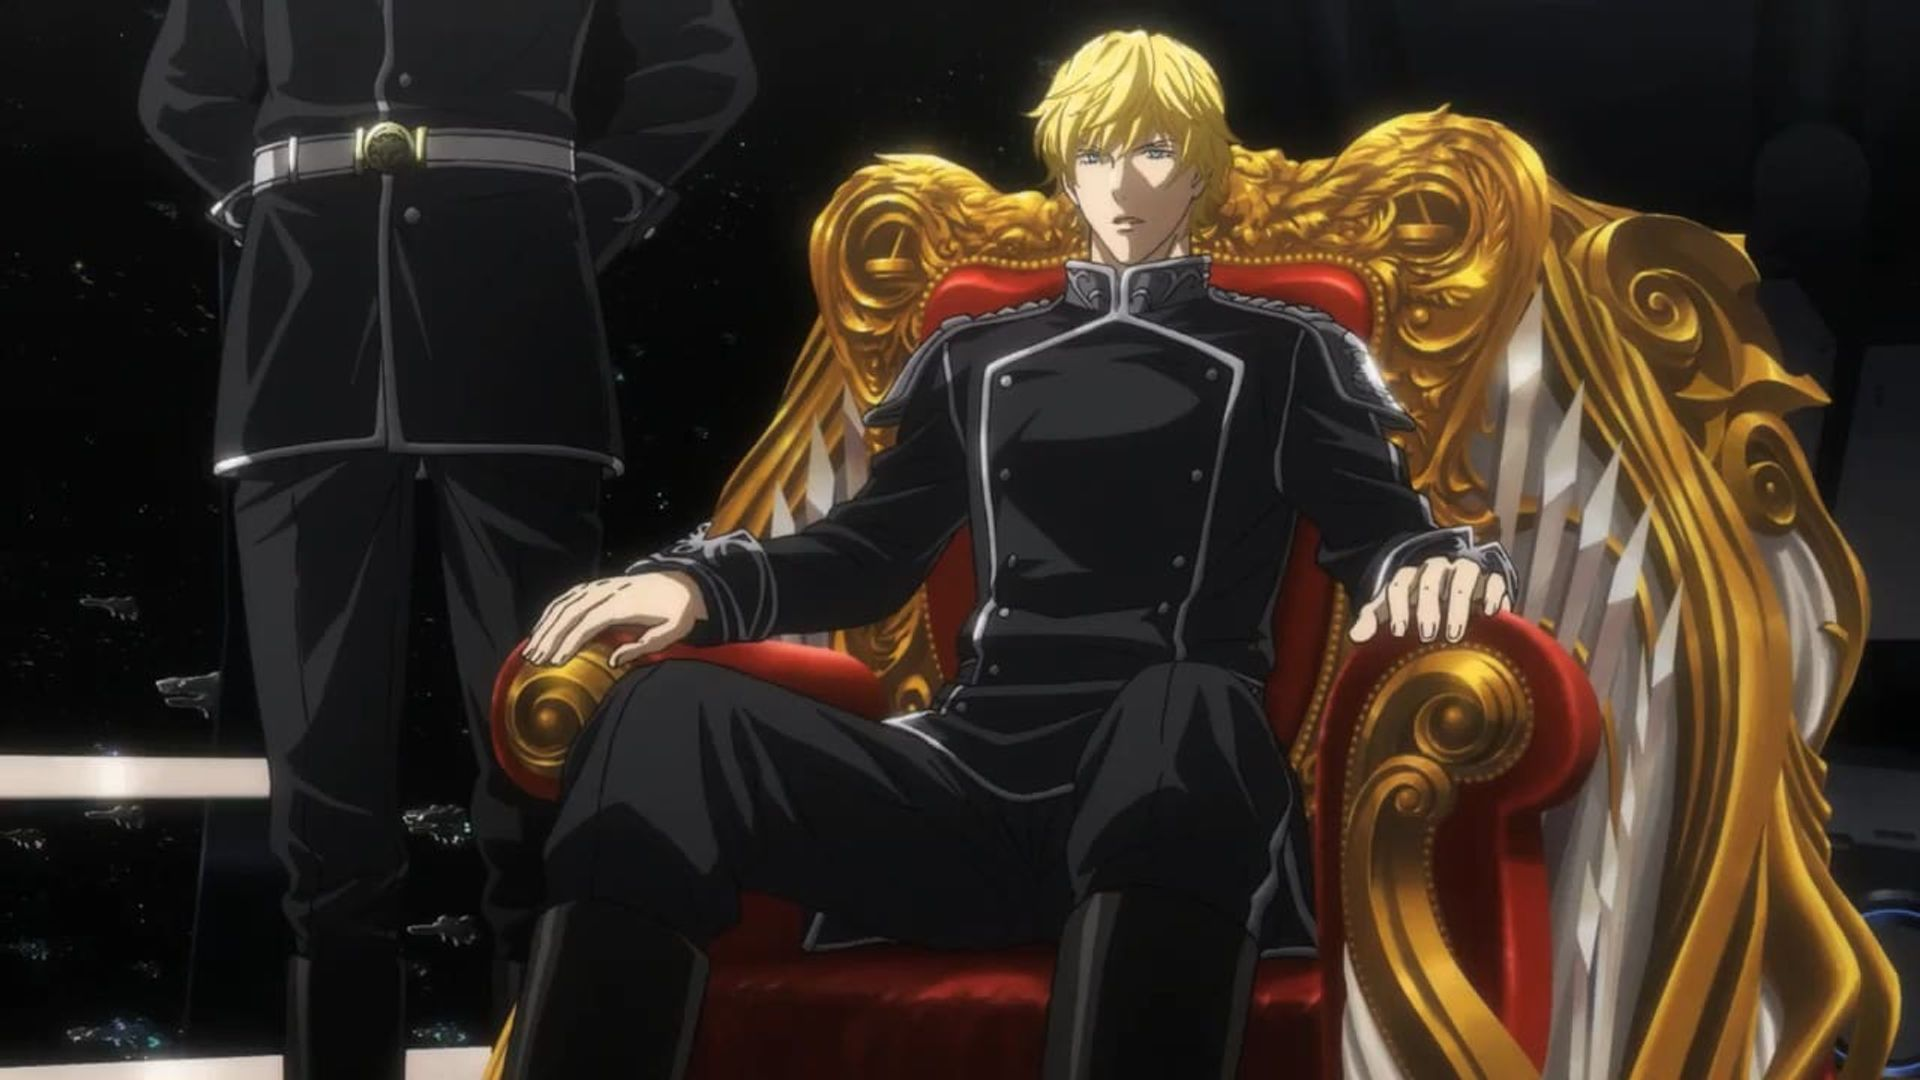 The Legend Of The Galactic Heroes Die Neue These Watch Episodes